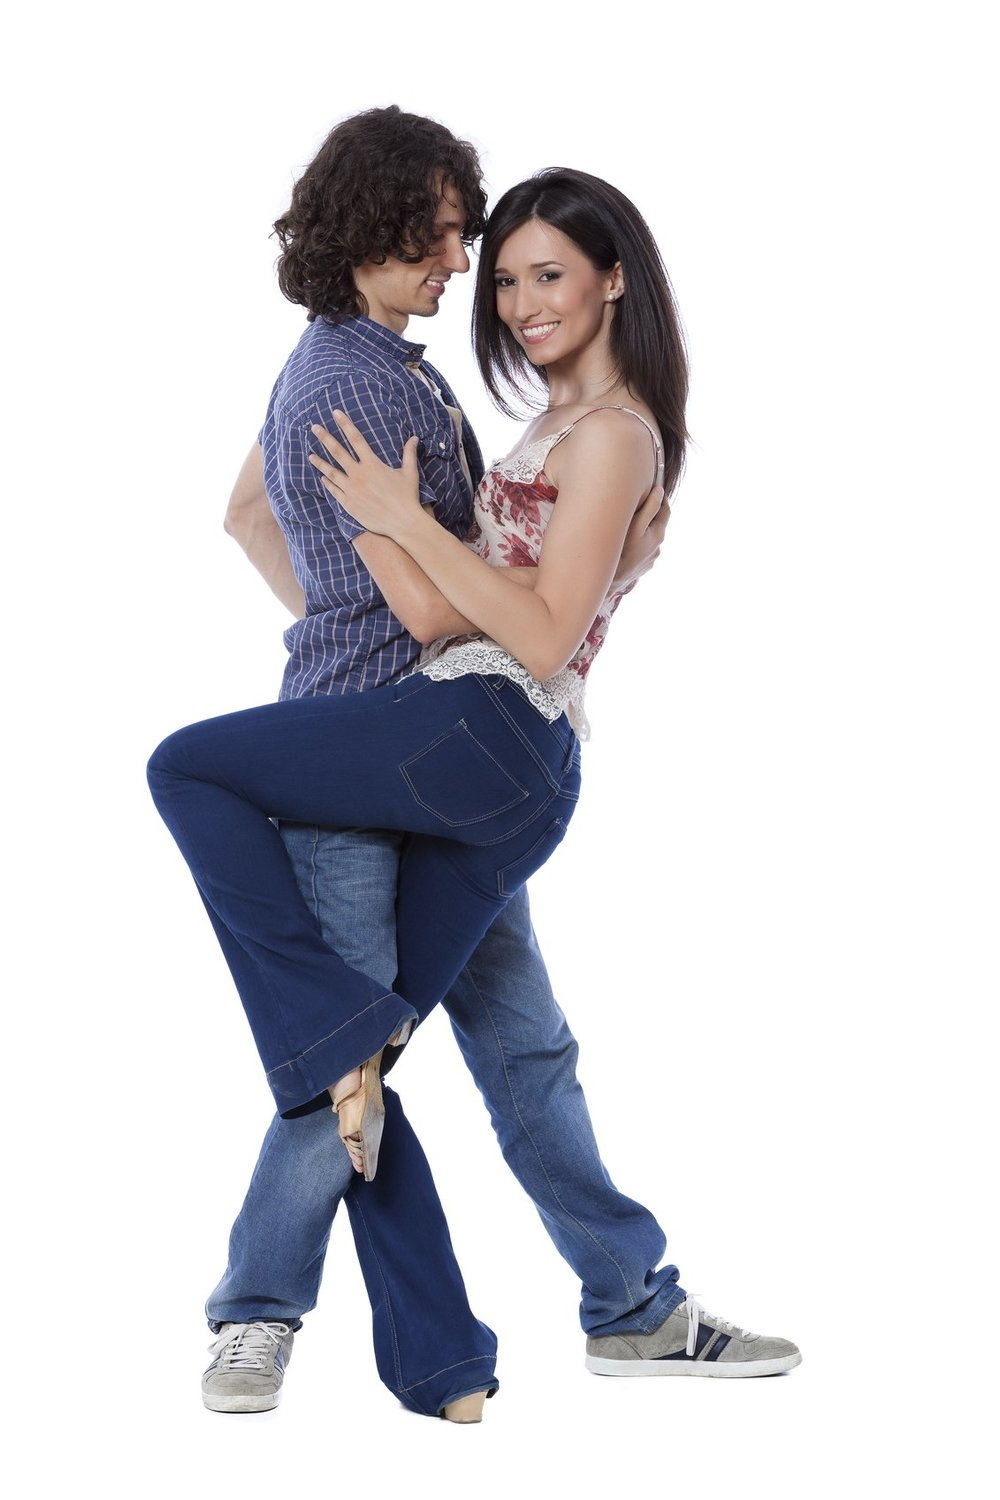 Many people feel very self-conscious when dancing in a social setting, but dance lessons can help shake those fears.